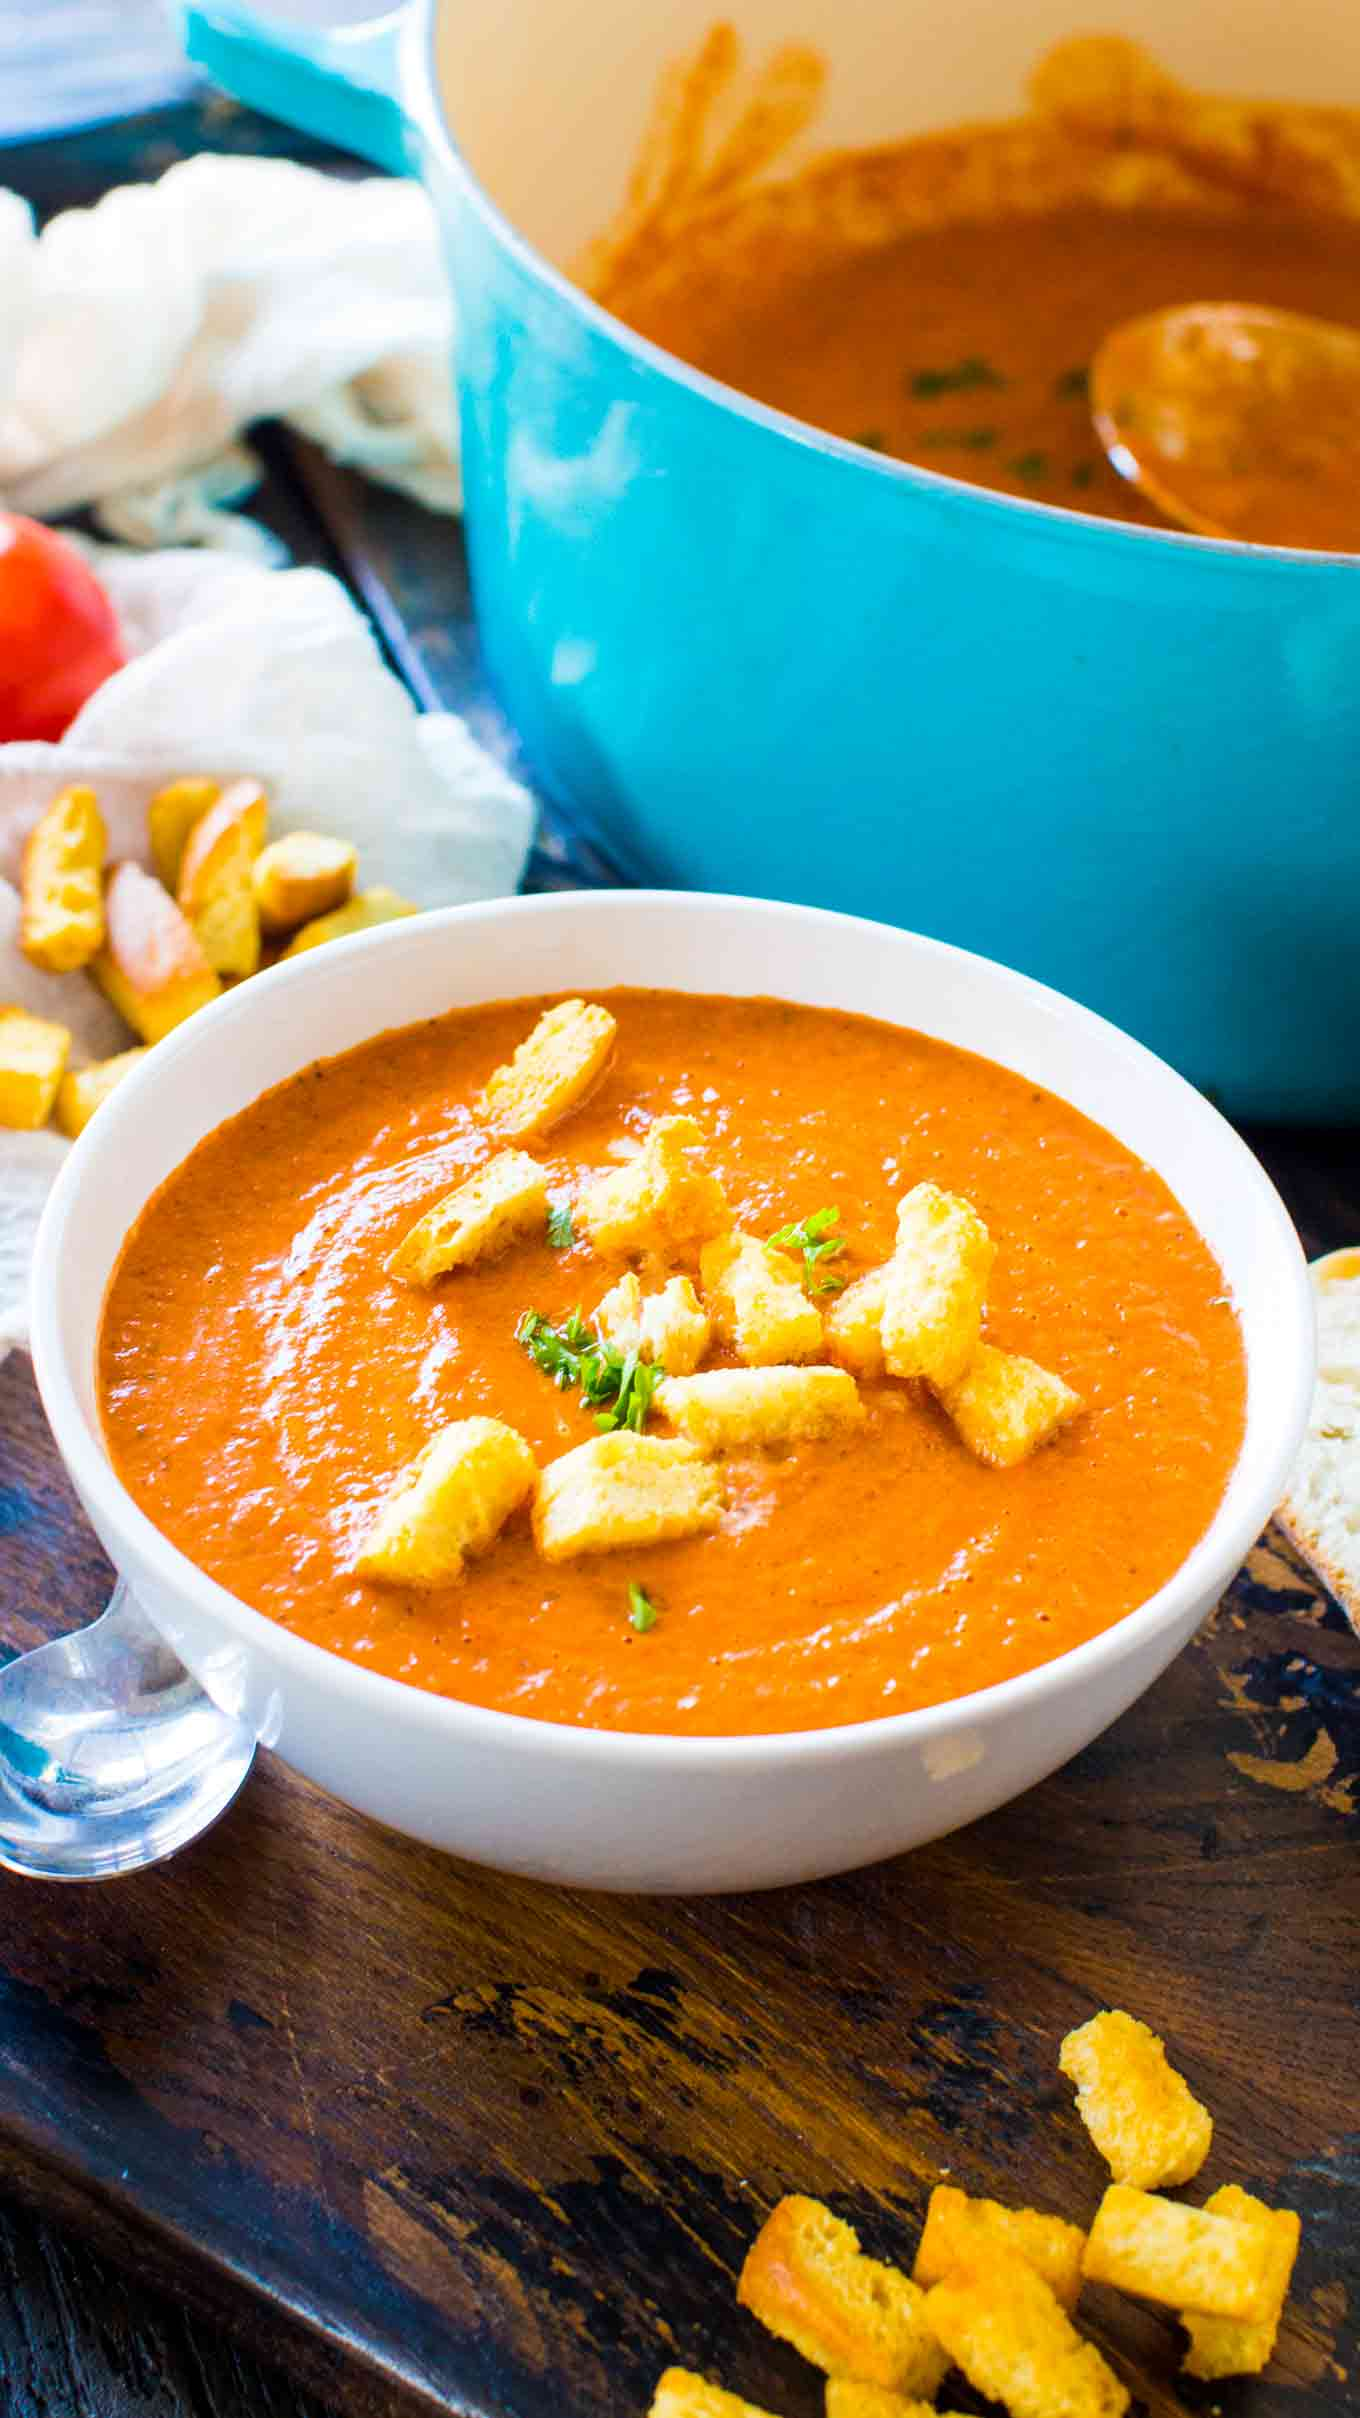 Best Panera Bread Creamy Tomato Soup Copycat is the chain's classic, famous, creamy soup that will warm your soul and make your taste buds happy.